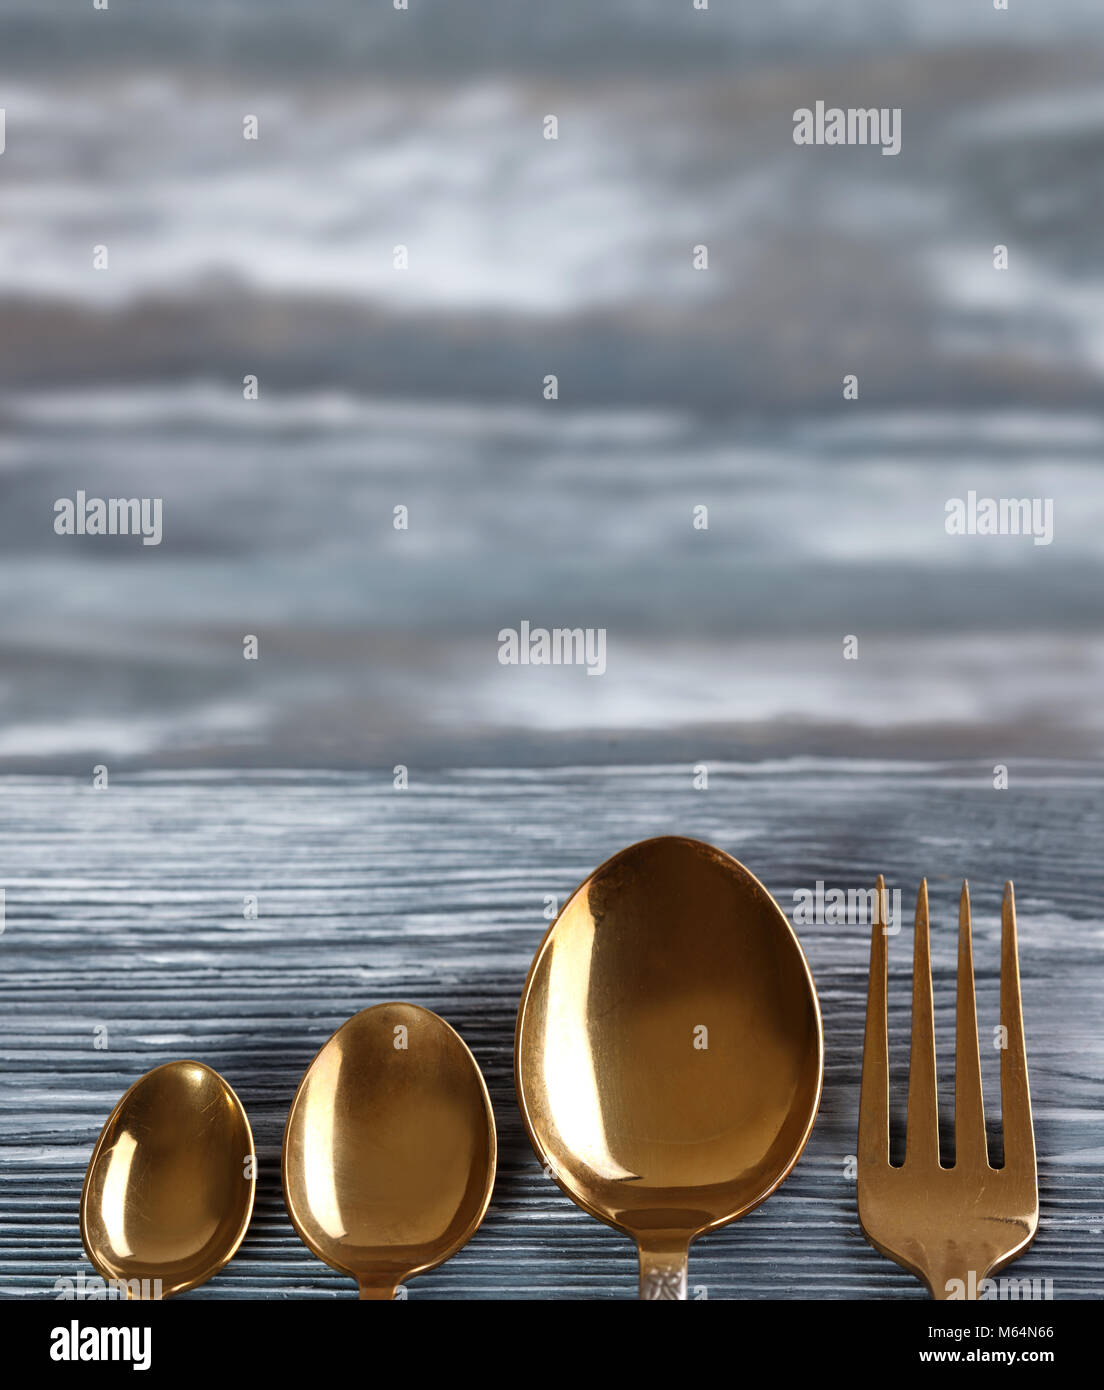 Wood Spoons Kitchen Tools Stock Photos & Wood Spoons Kitchen Tools ...